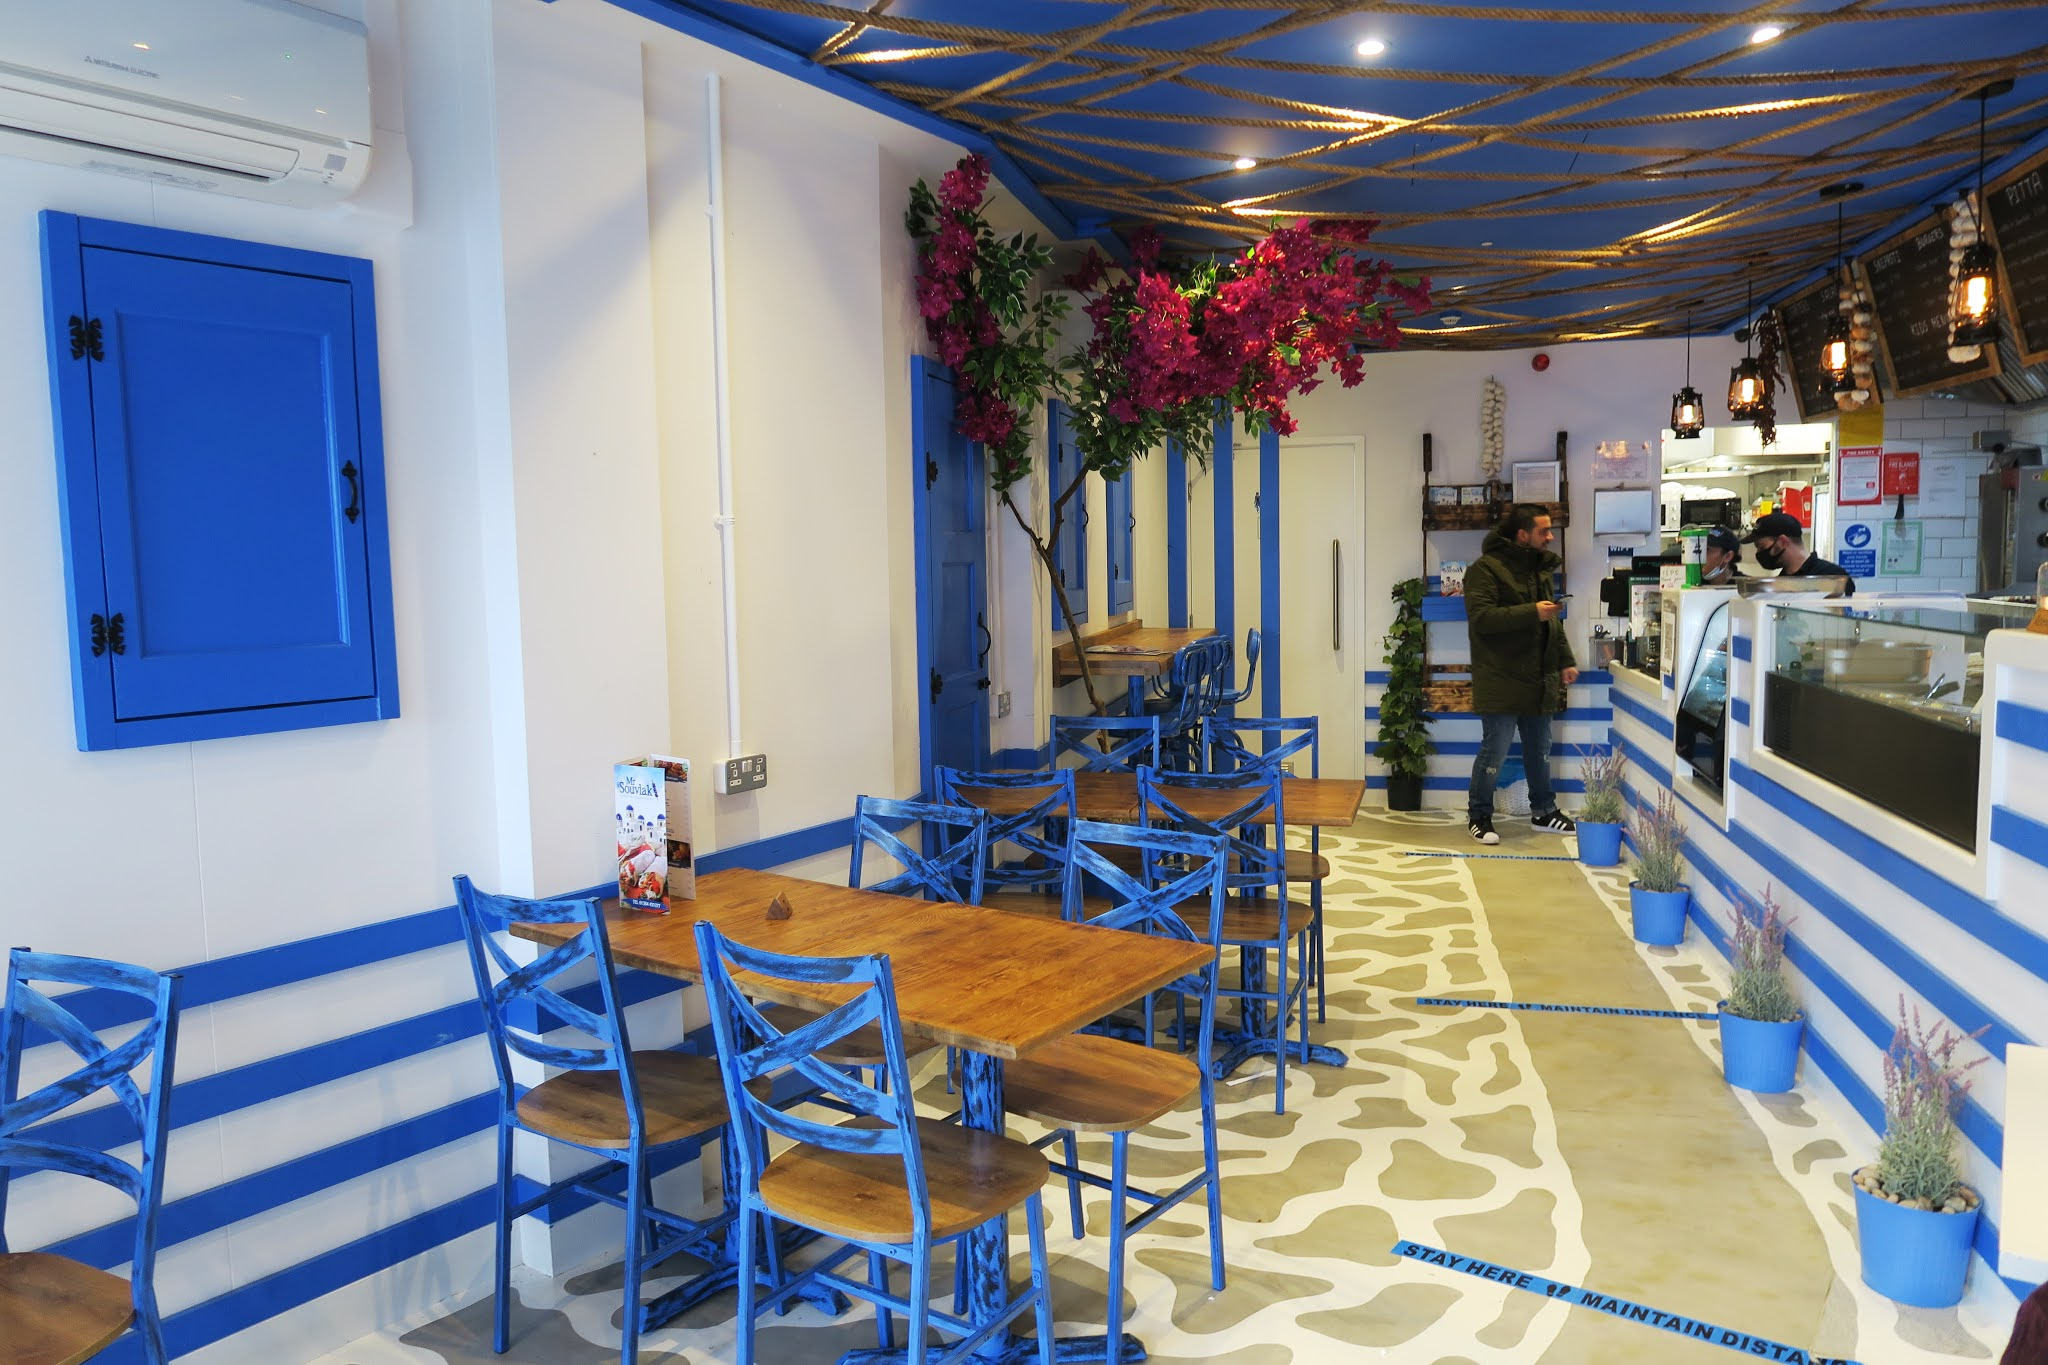 Inside Mr Souvlaki restaurant in Stourbridge. The interior is decorated to look like a white-washed greek town.